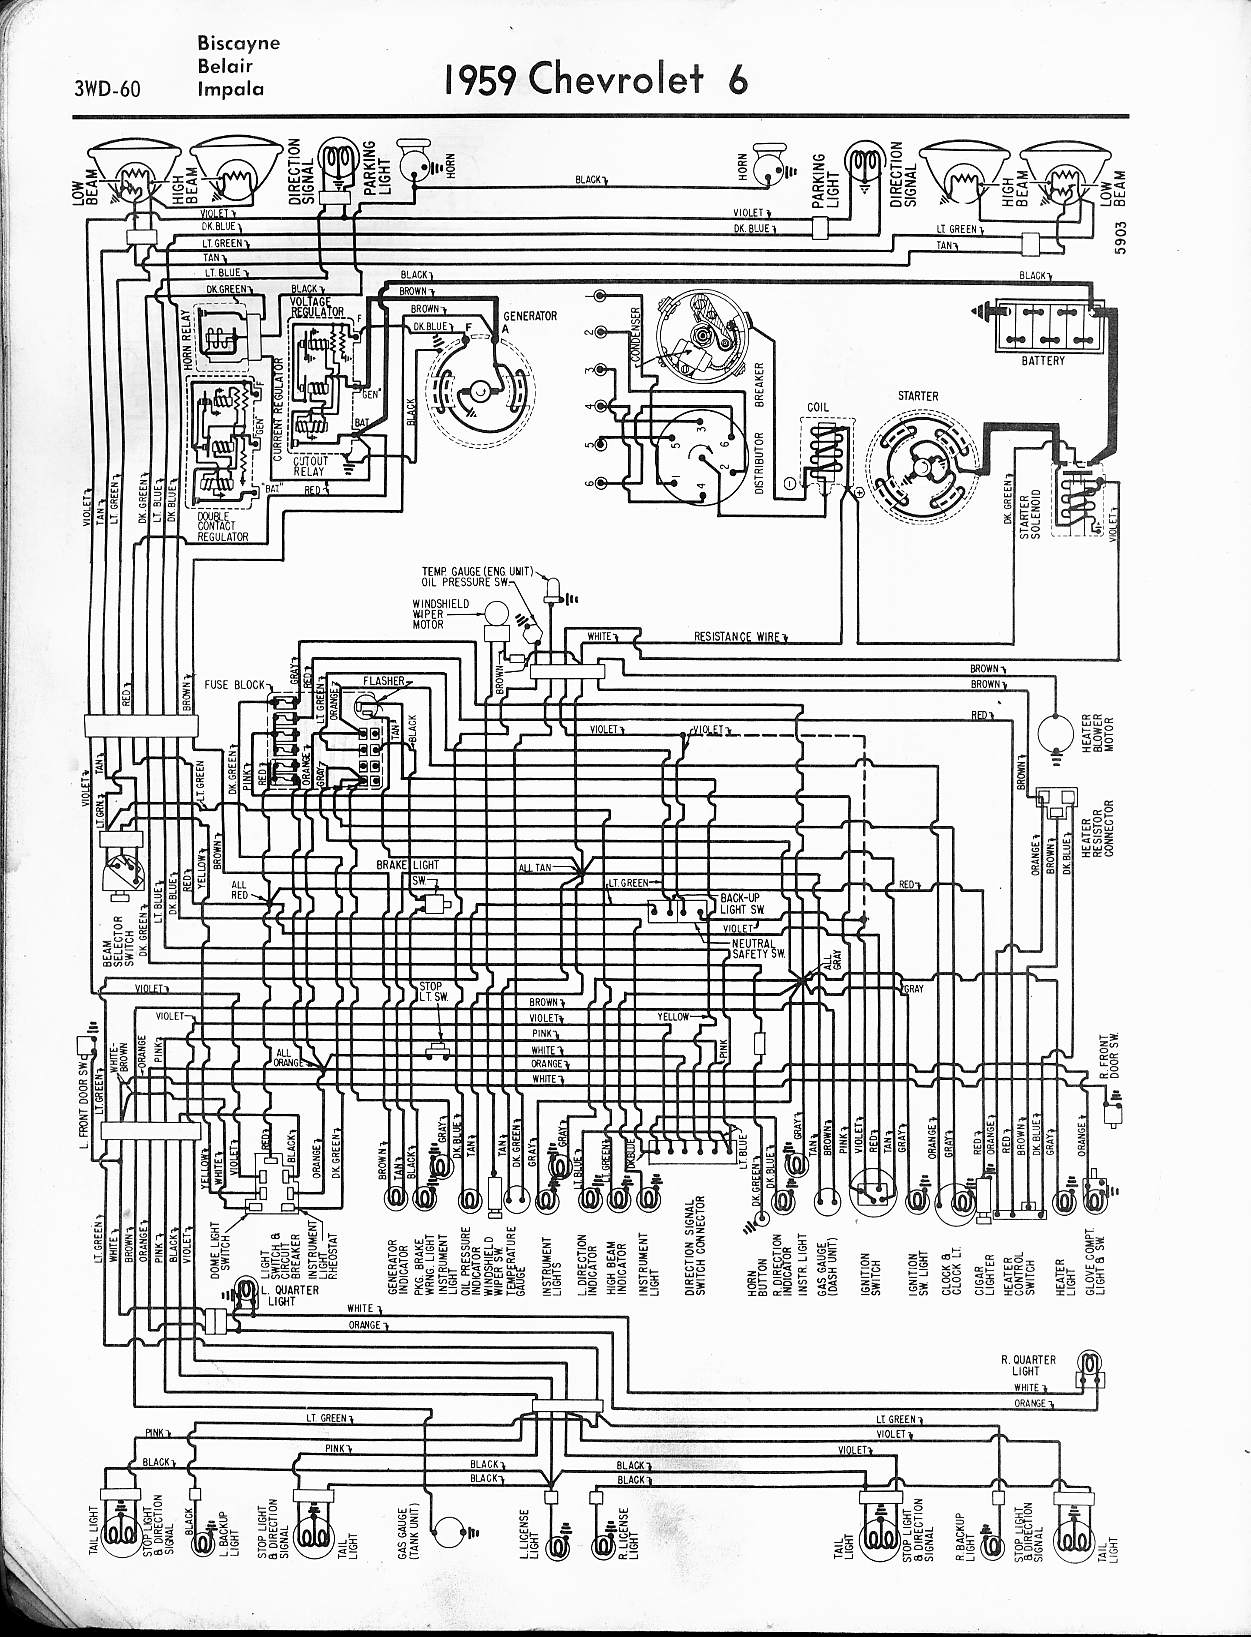 59 Chevy Truck Wiring Diagram Simple 1969 Impala Schematic 1959 Data Schema 65 57